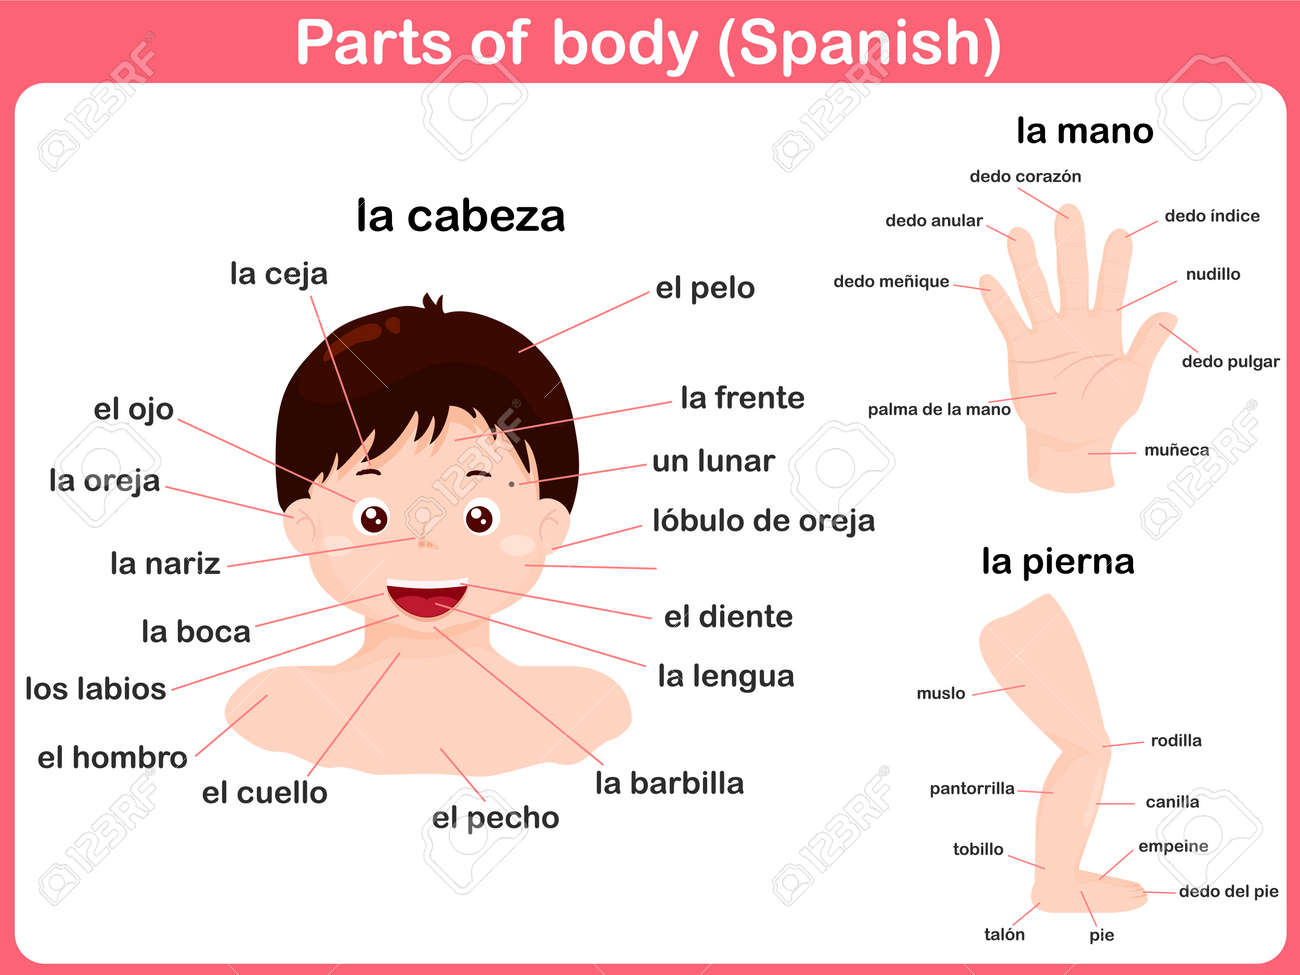 Body Parts Labeled In Spanish 56144 | TRENDNET